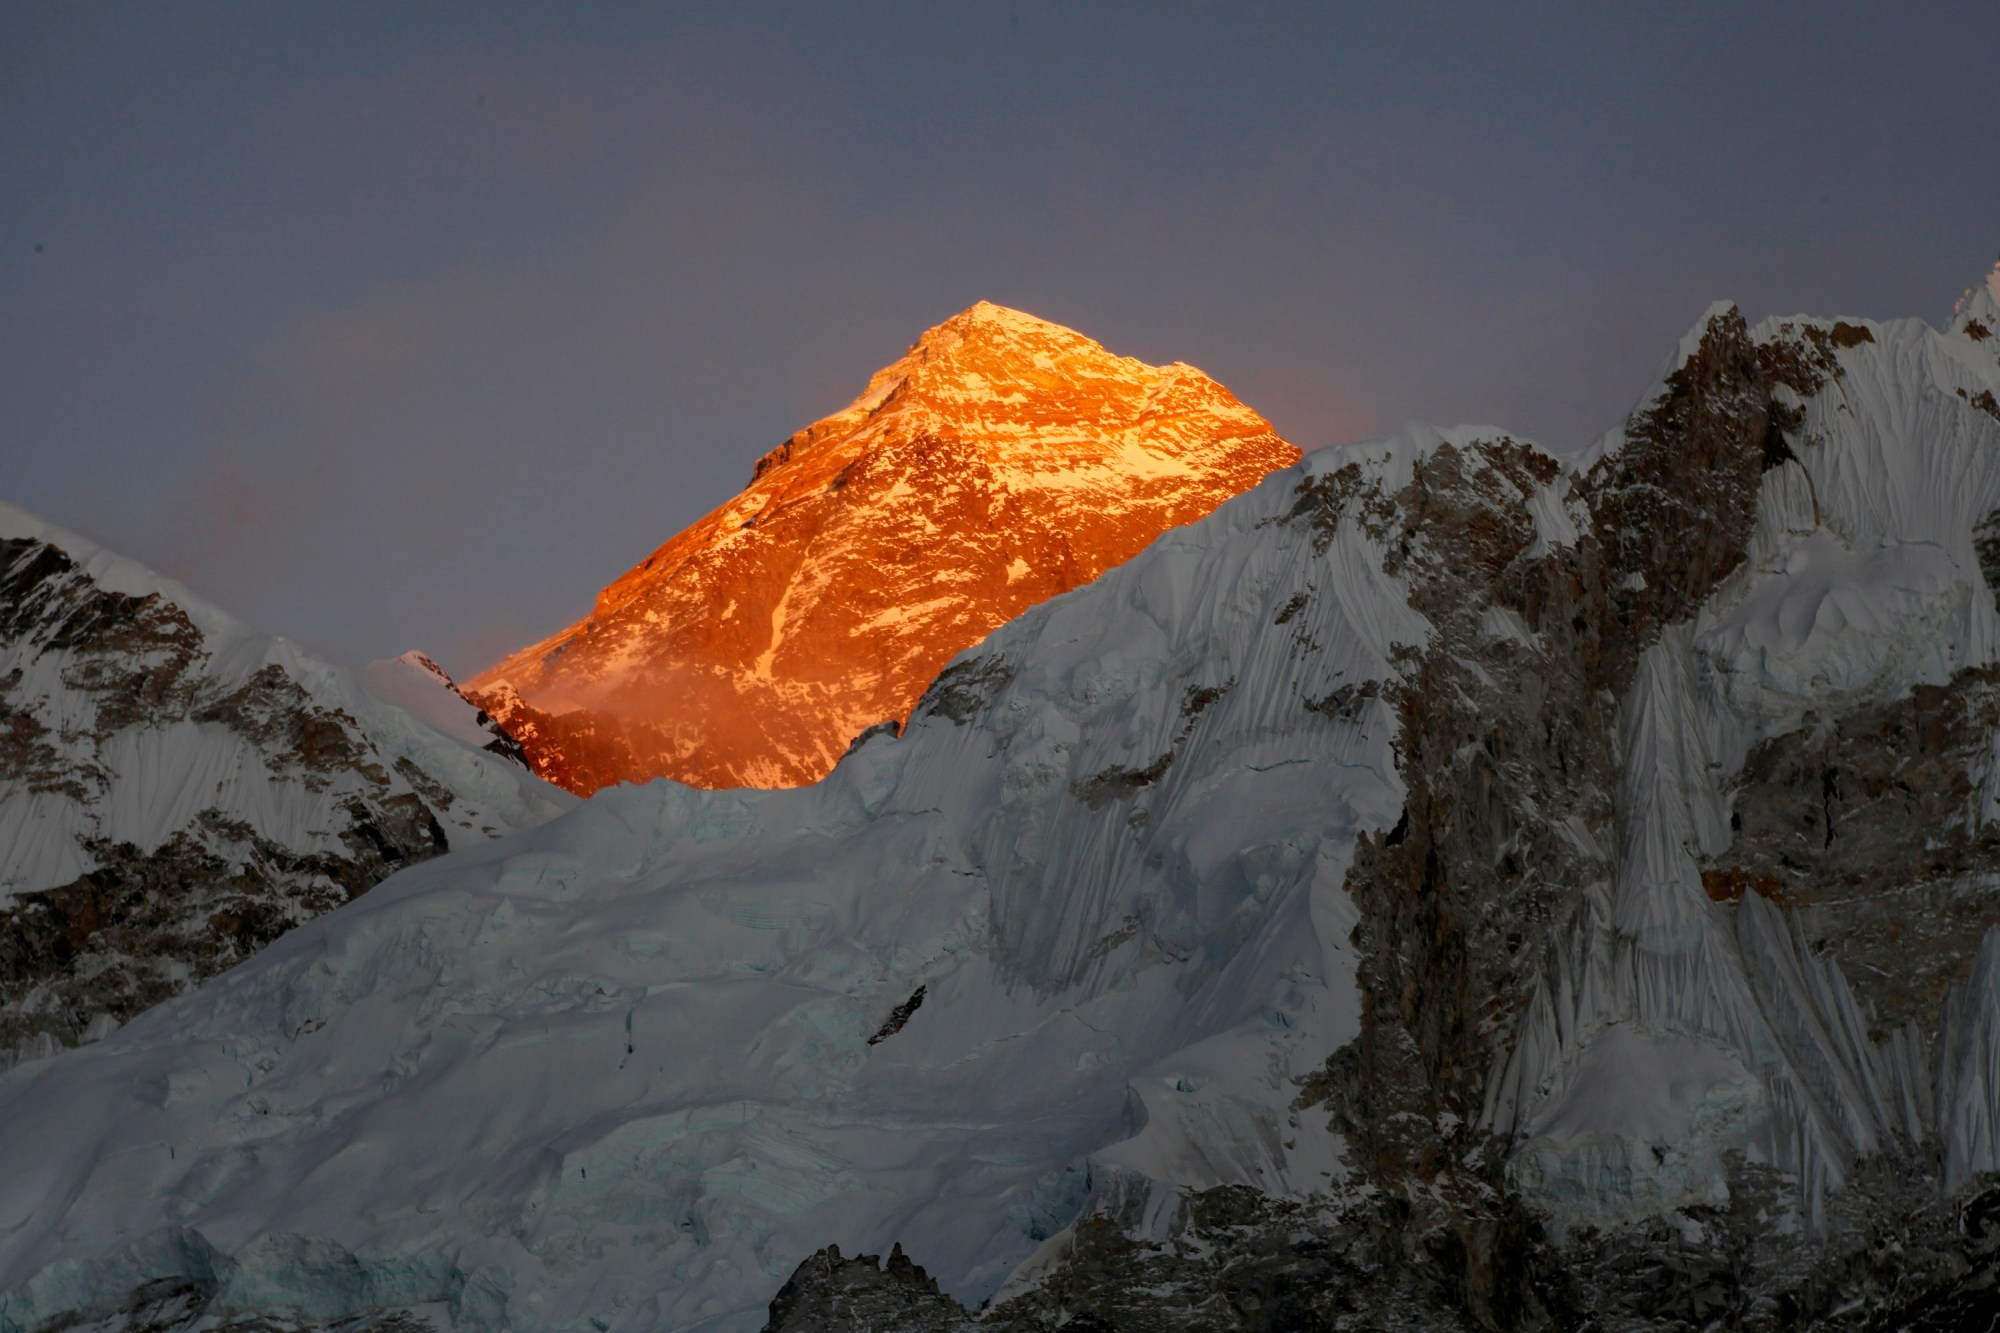 In this Nov. 12, 2015 file photo, Mt. Everest is seen from the way to Kalapatthar in Nepal. A Swiss climber and an American have died on Mount Everest in the season's first casualties on the world's highest mountain, expedition organizers said Thursday. (AP Photo/Tashi Sherpa, File)